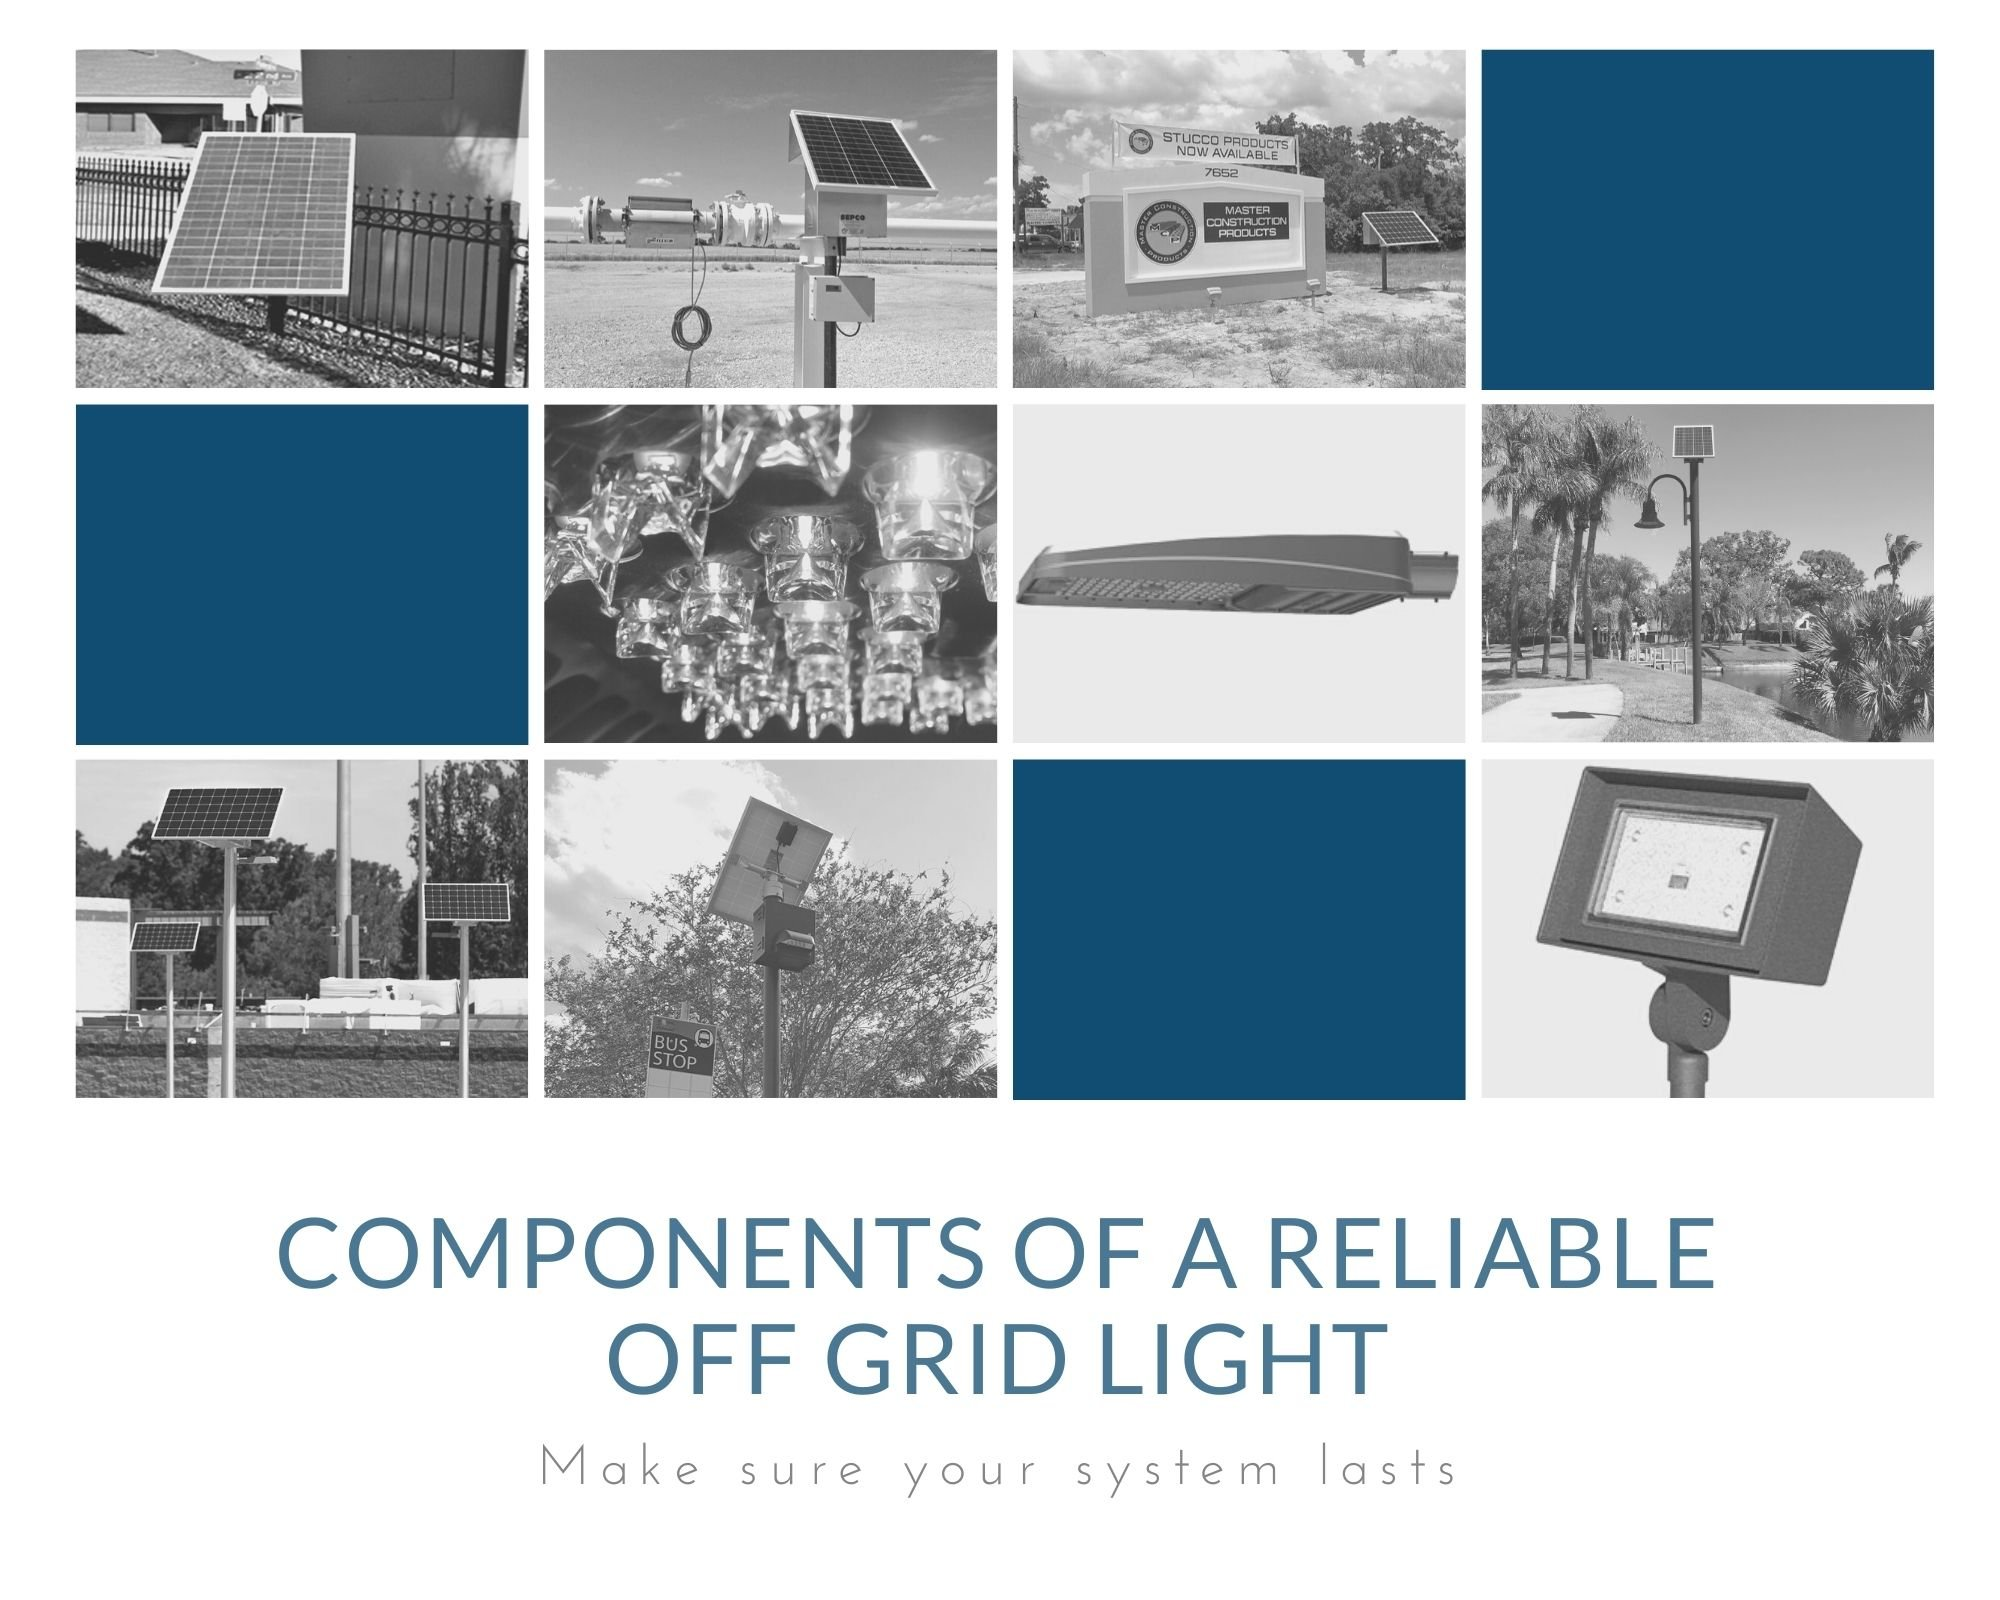 Components of a Reliable Off Grid Lighting System